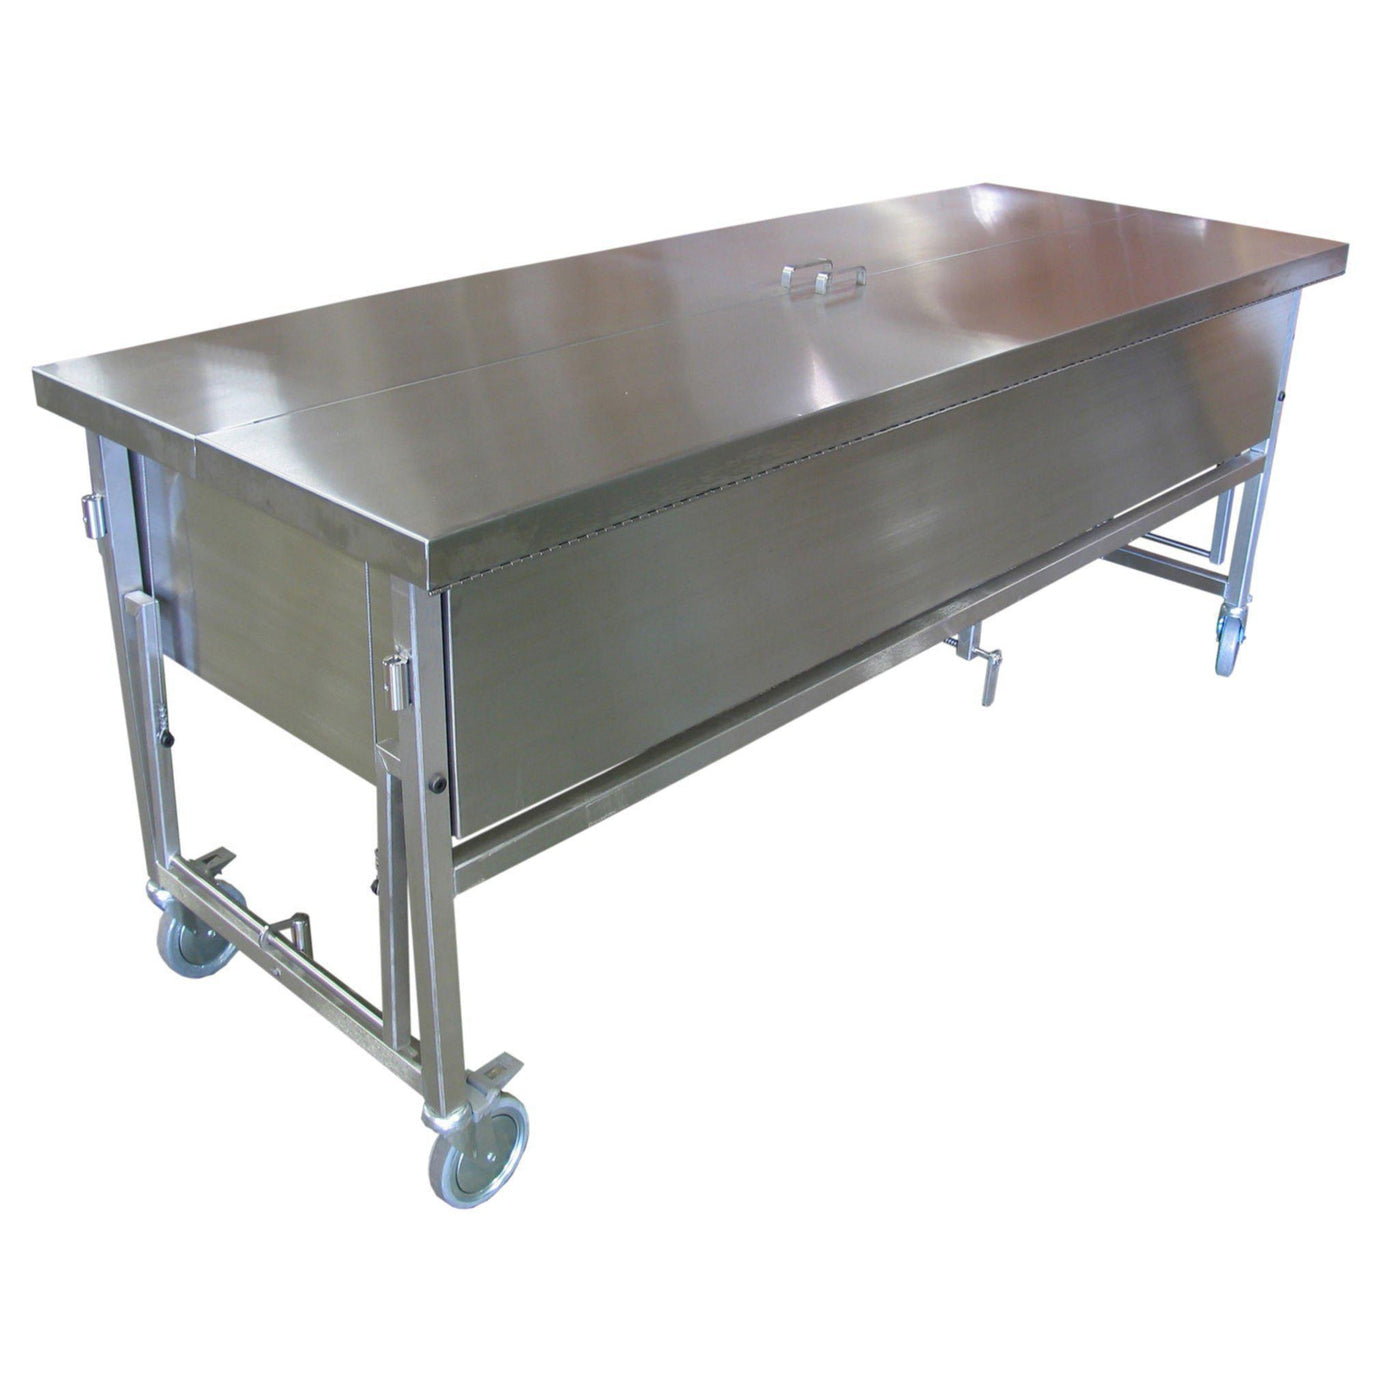 Manually Elevated Immersion Dissection Table-Anatomy Dissection Tables-Mortech Manufacturing Company Inc. Quality Stainless Steel Autopsy, Morgue, Funeral Home, Necropsy, Veterinary / Anatomy, Dissection Equipment and Accessories